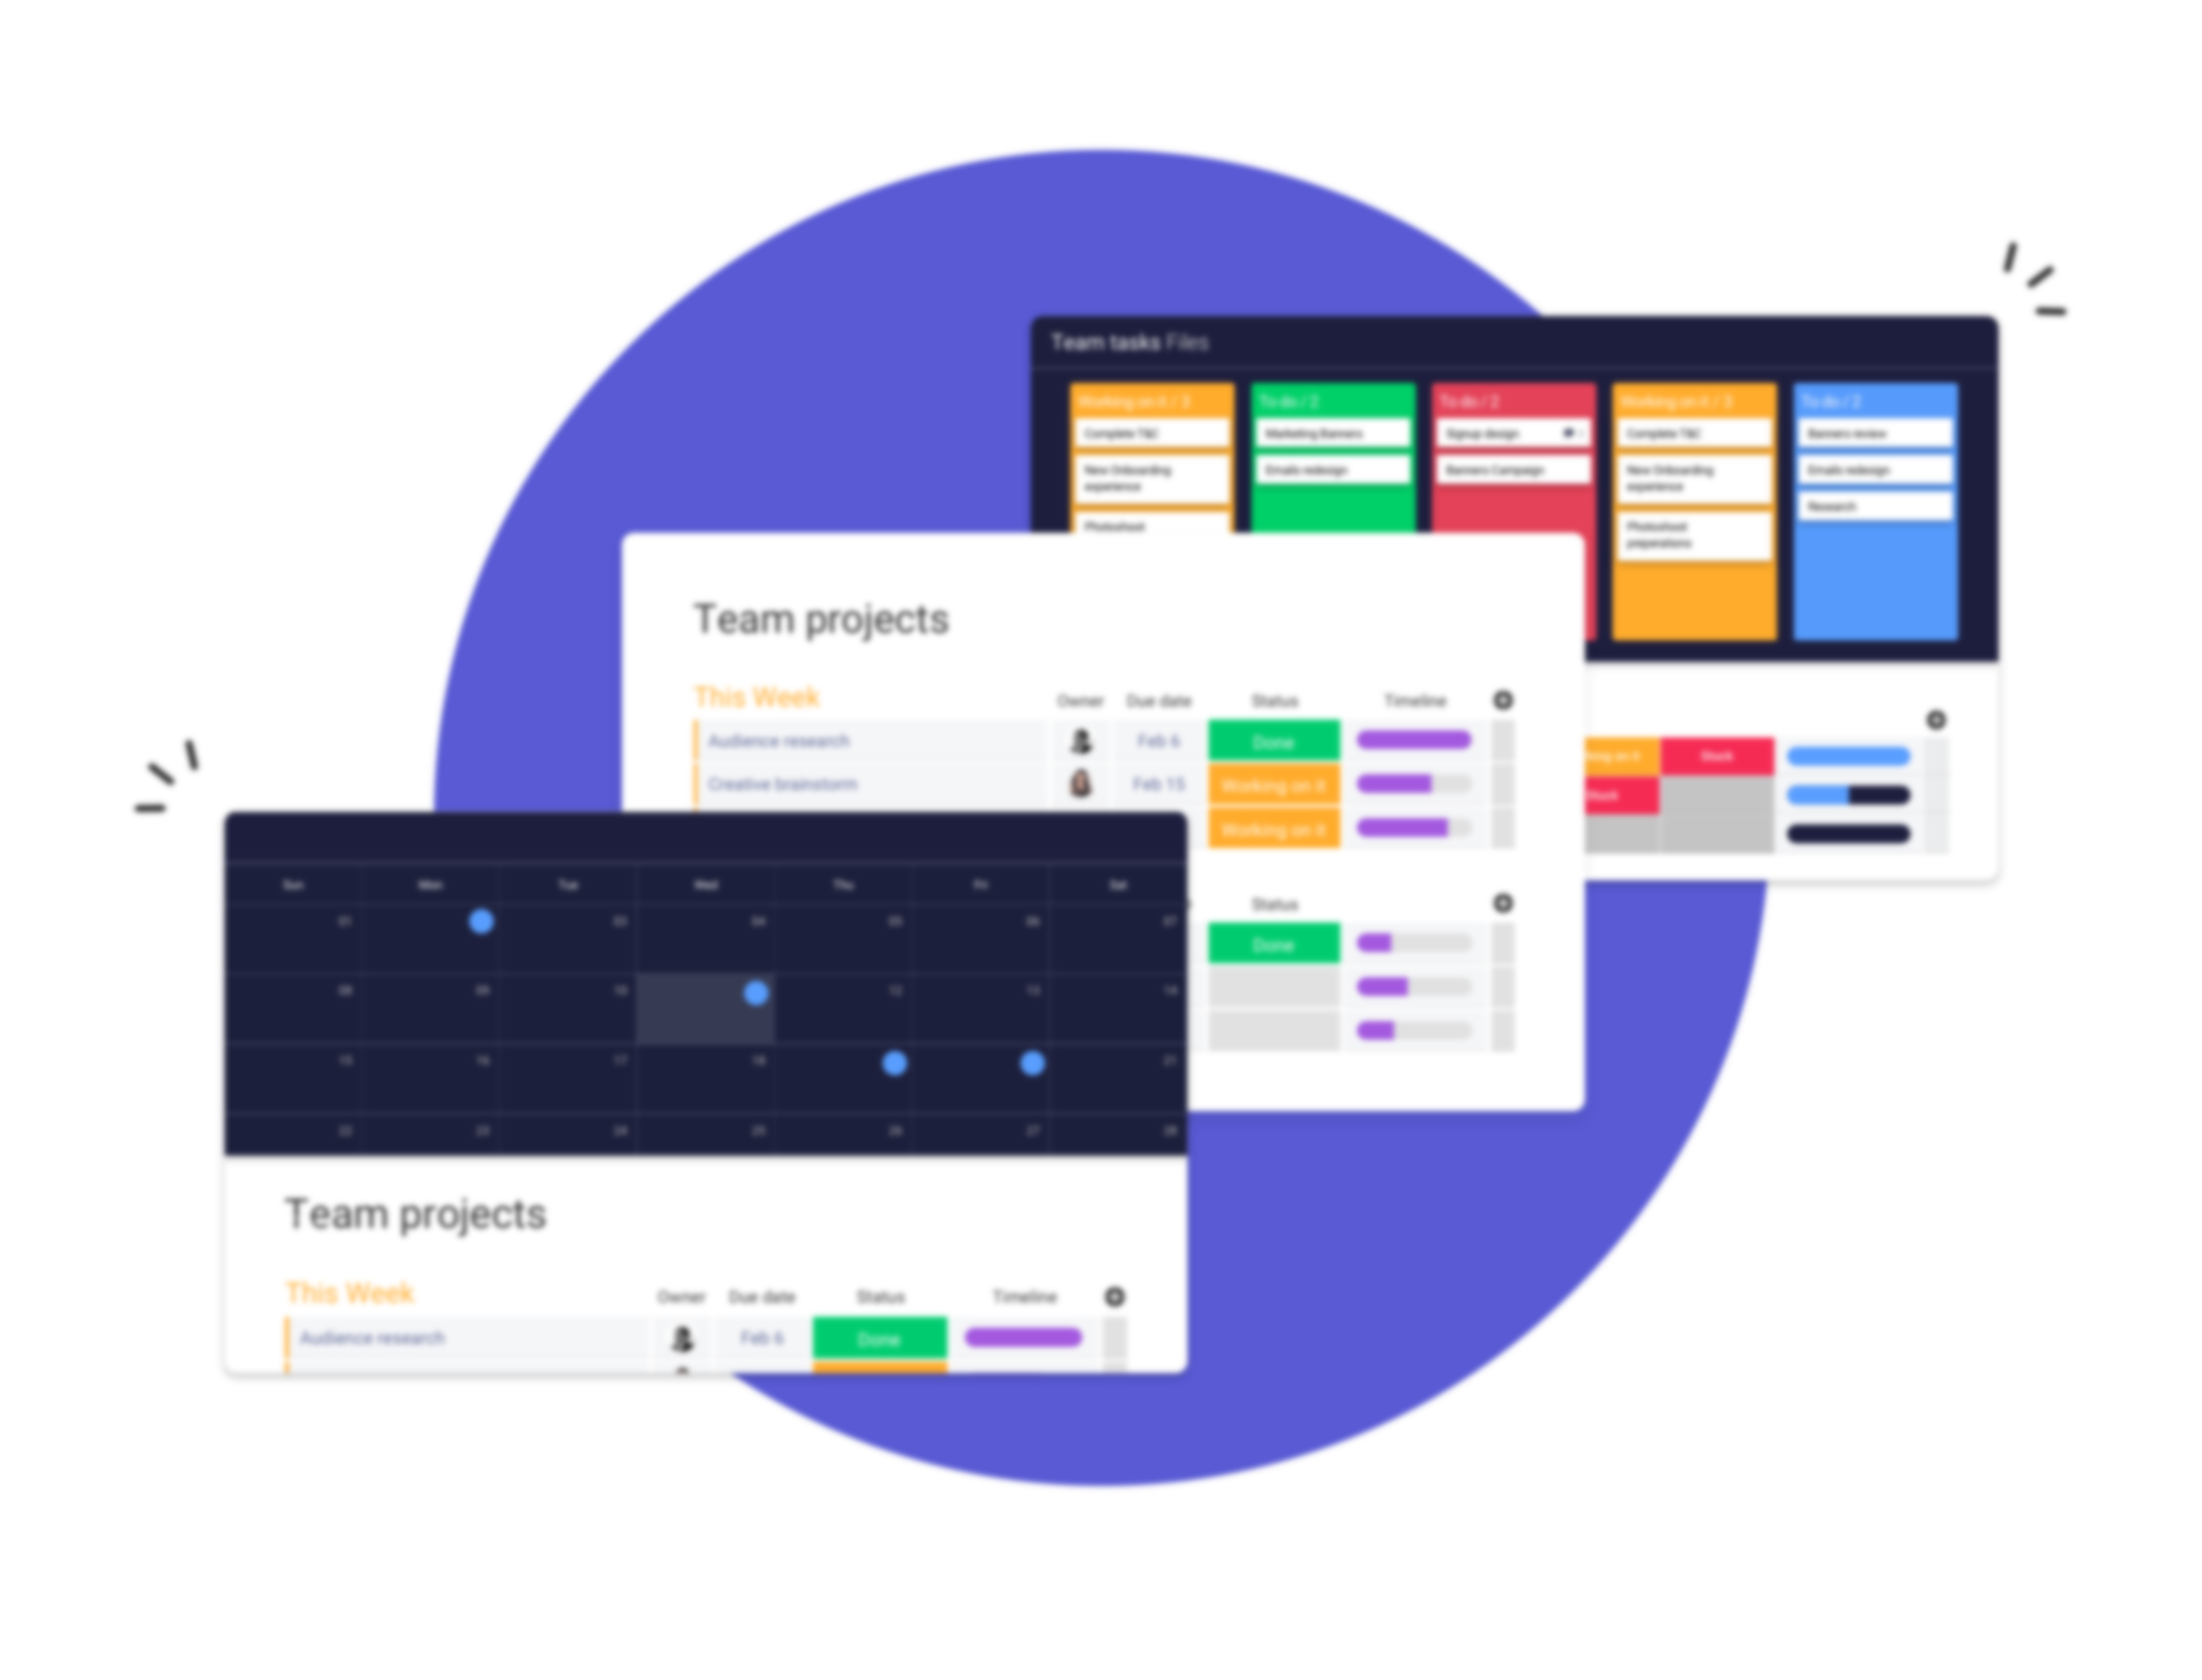 3 boards with kanban, team projects and calendar